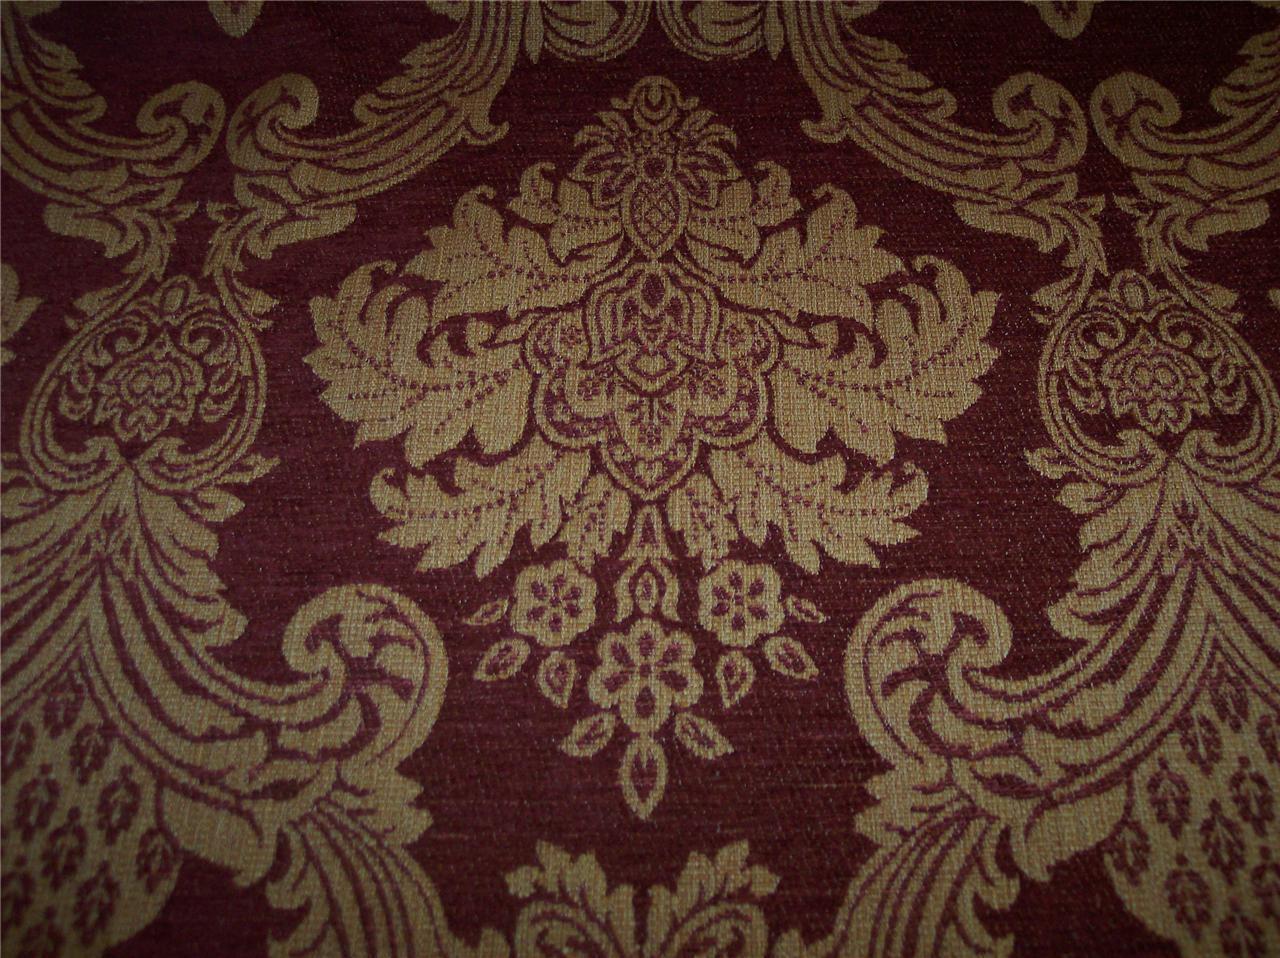 Canyon Red Gold Jacquard Fabric Upholstery Fabric 83 Ebay